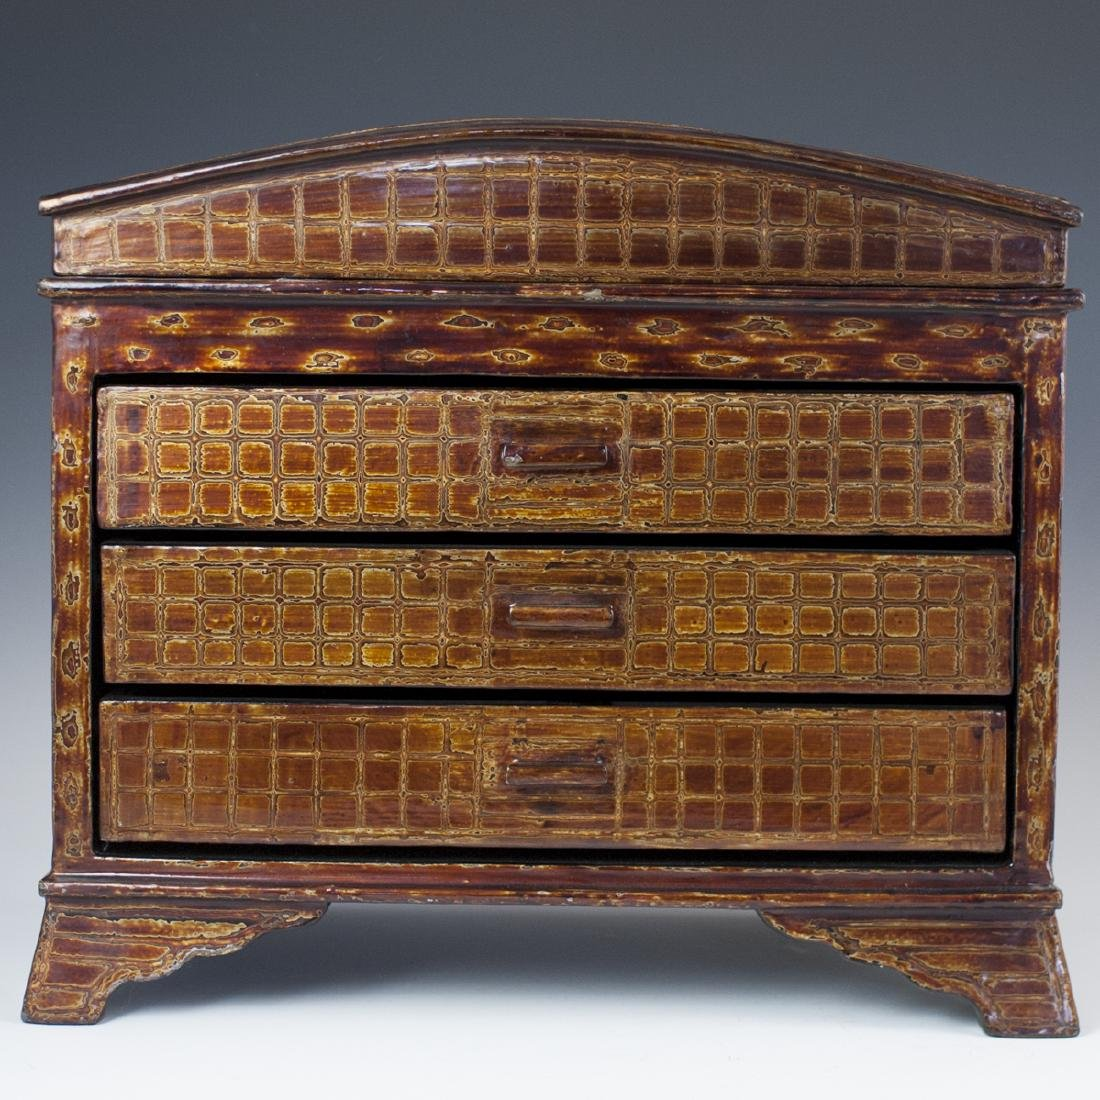 Vintage Lacquered Wood Chest